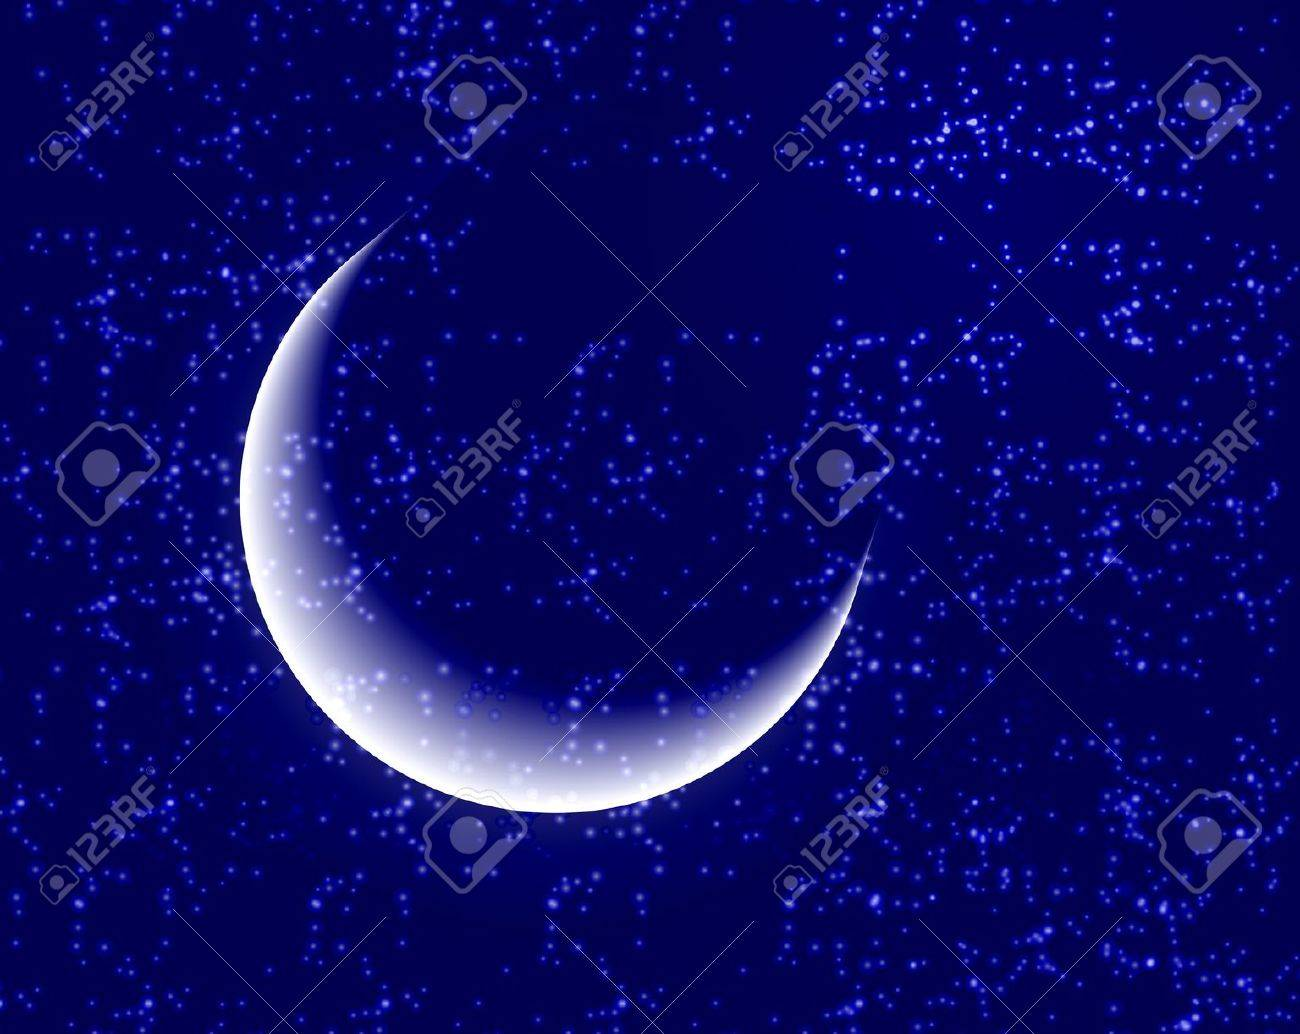 Space background with bright stars and moon Stock Vector - 14164708